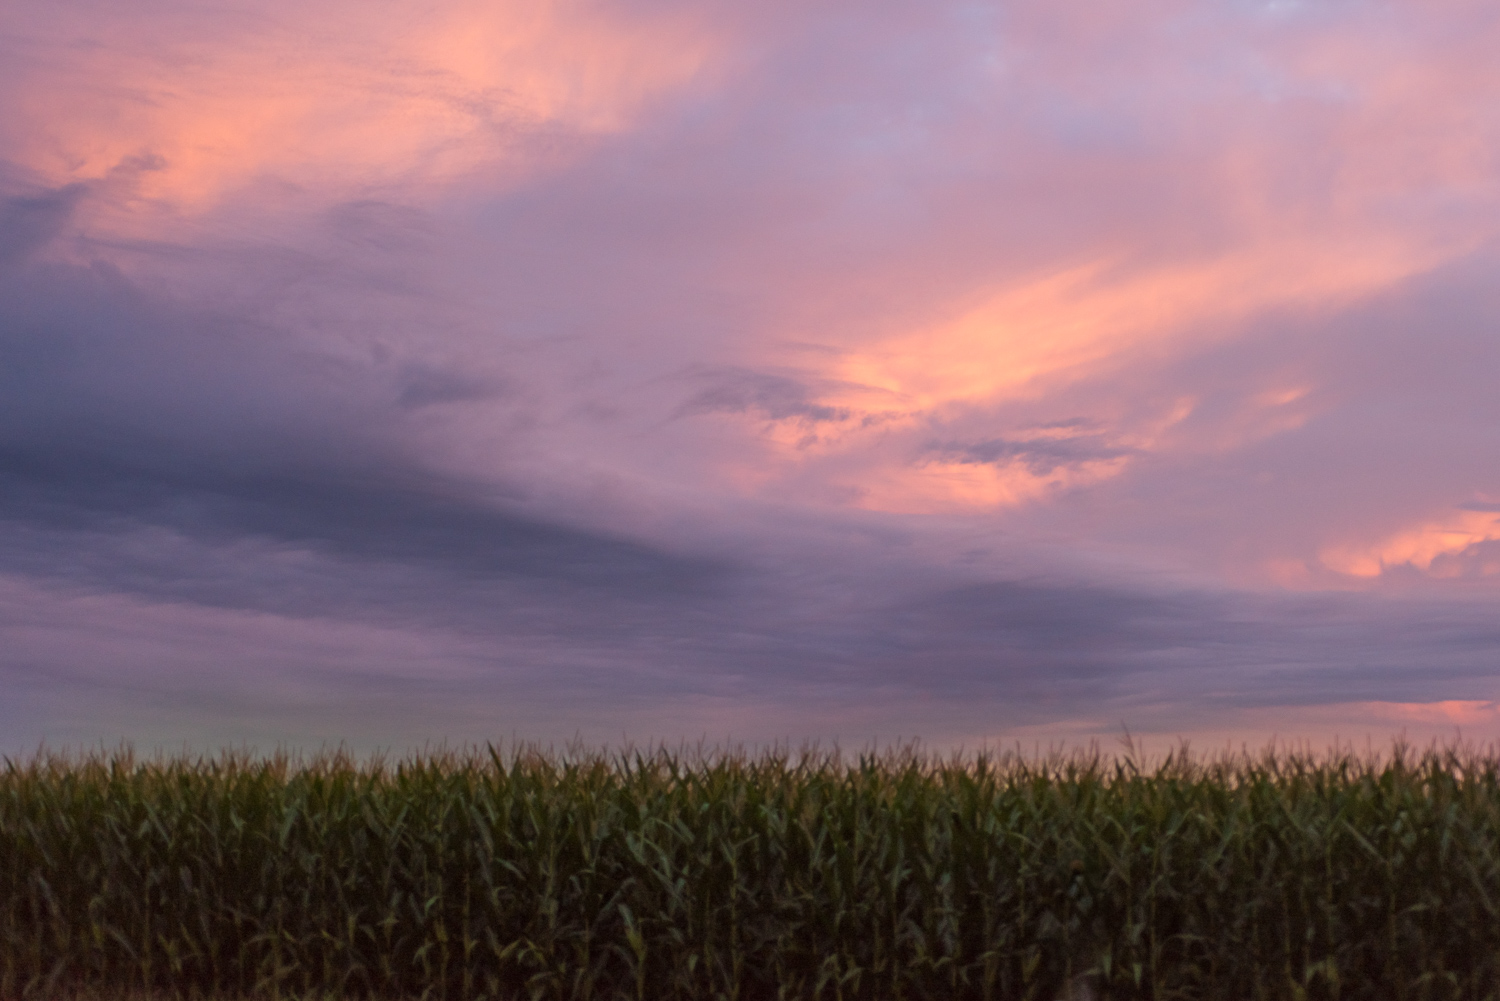 Color Photograph, Midwest, Sunset, Corn, Clouds, Sky, Interior Design, Wall Art